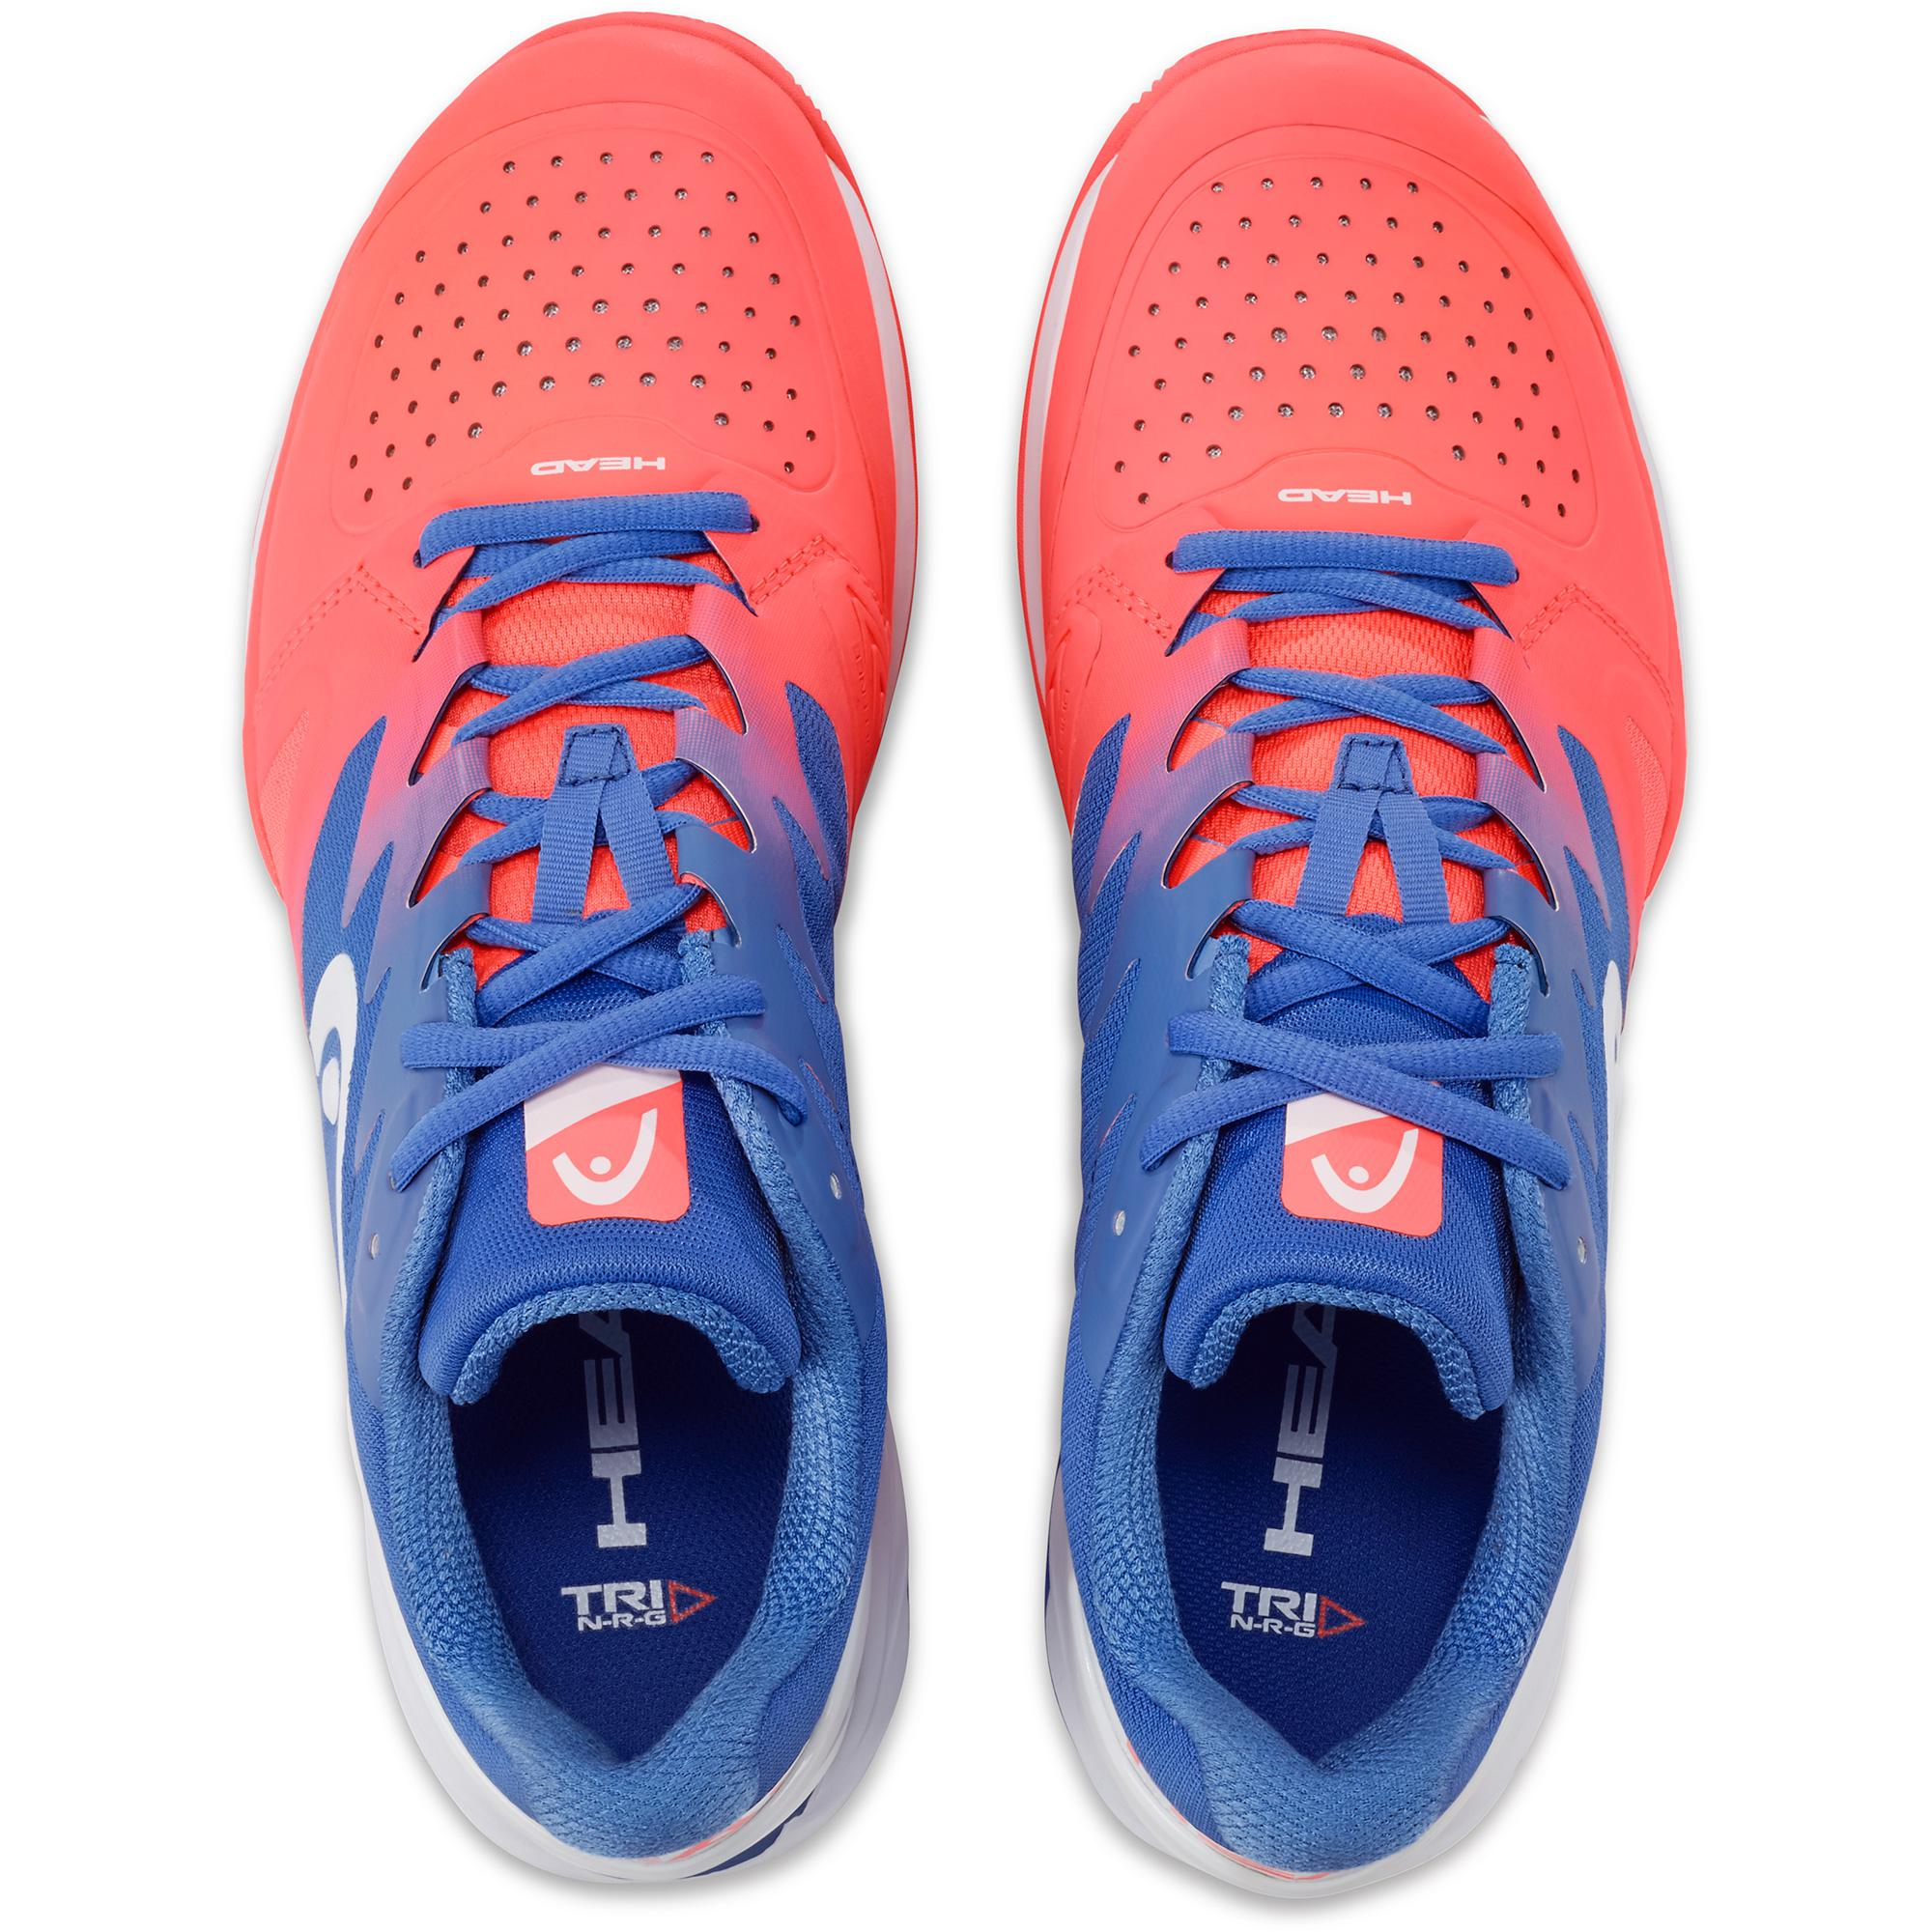 Head Womens Sprint Pro 2.0 Clay Court Tennis Shoes - Marine Blue